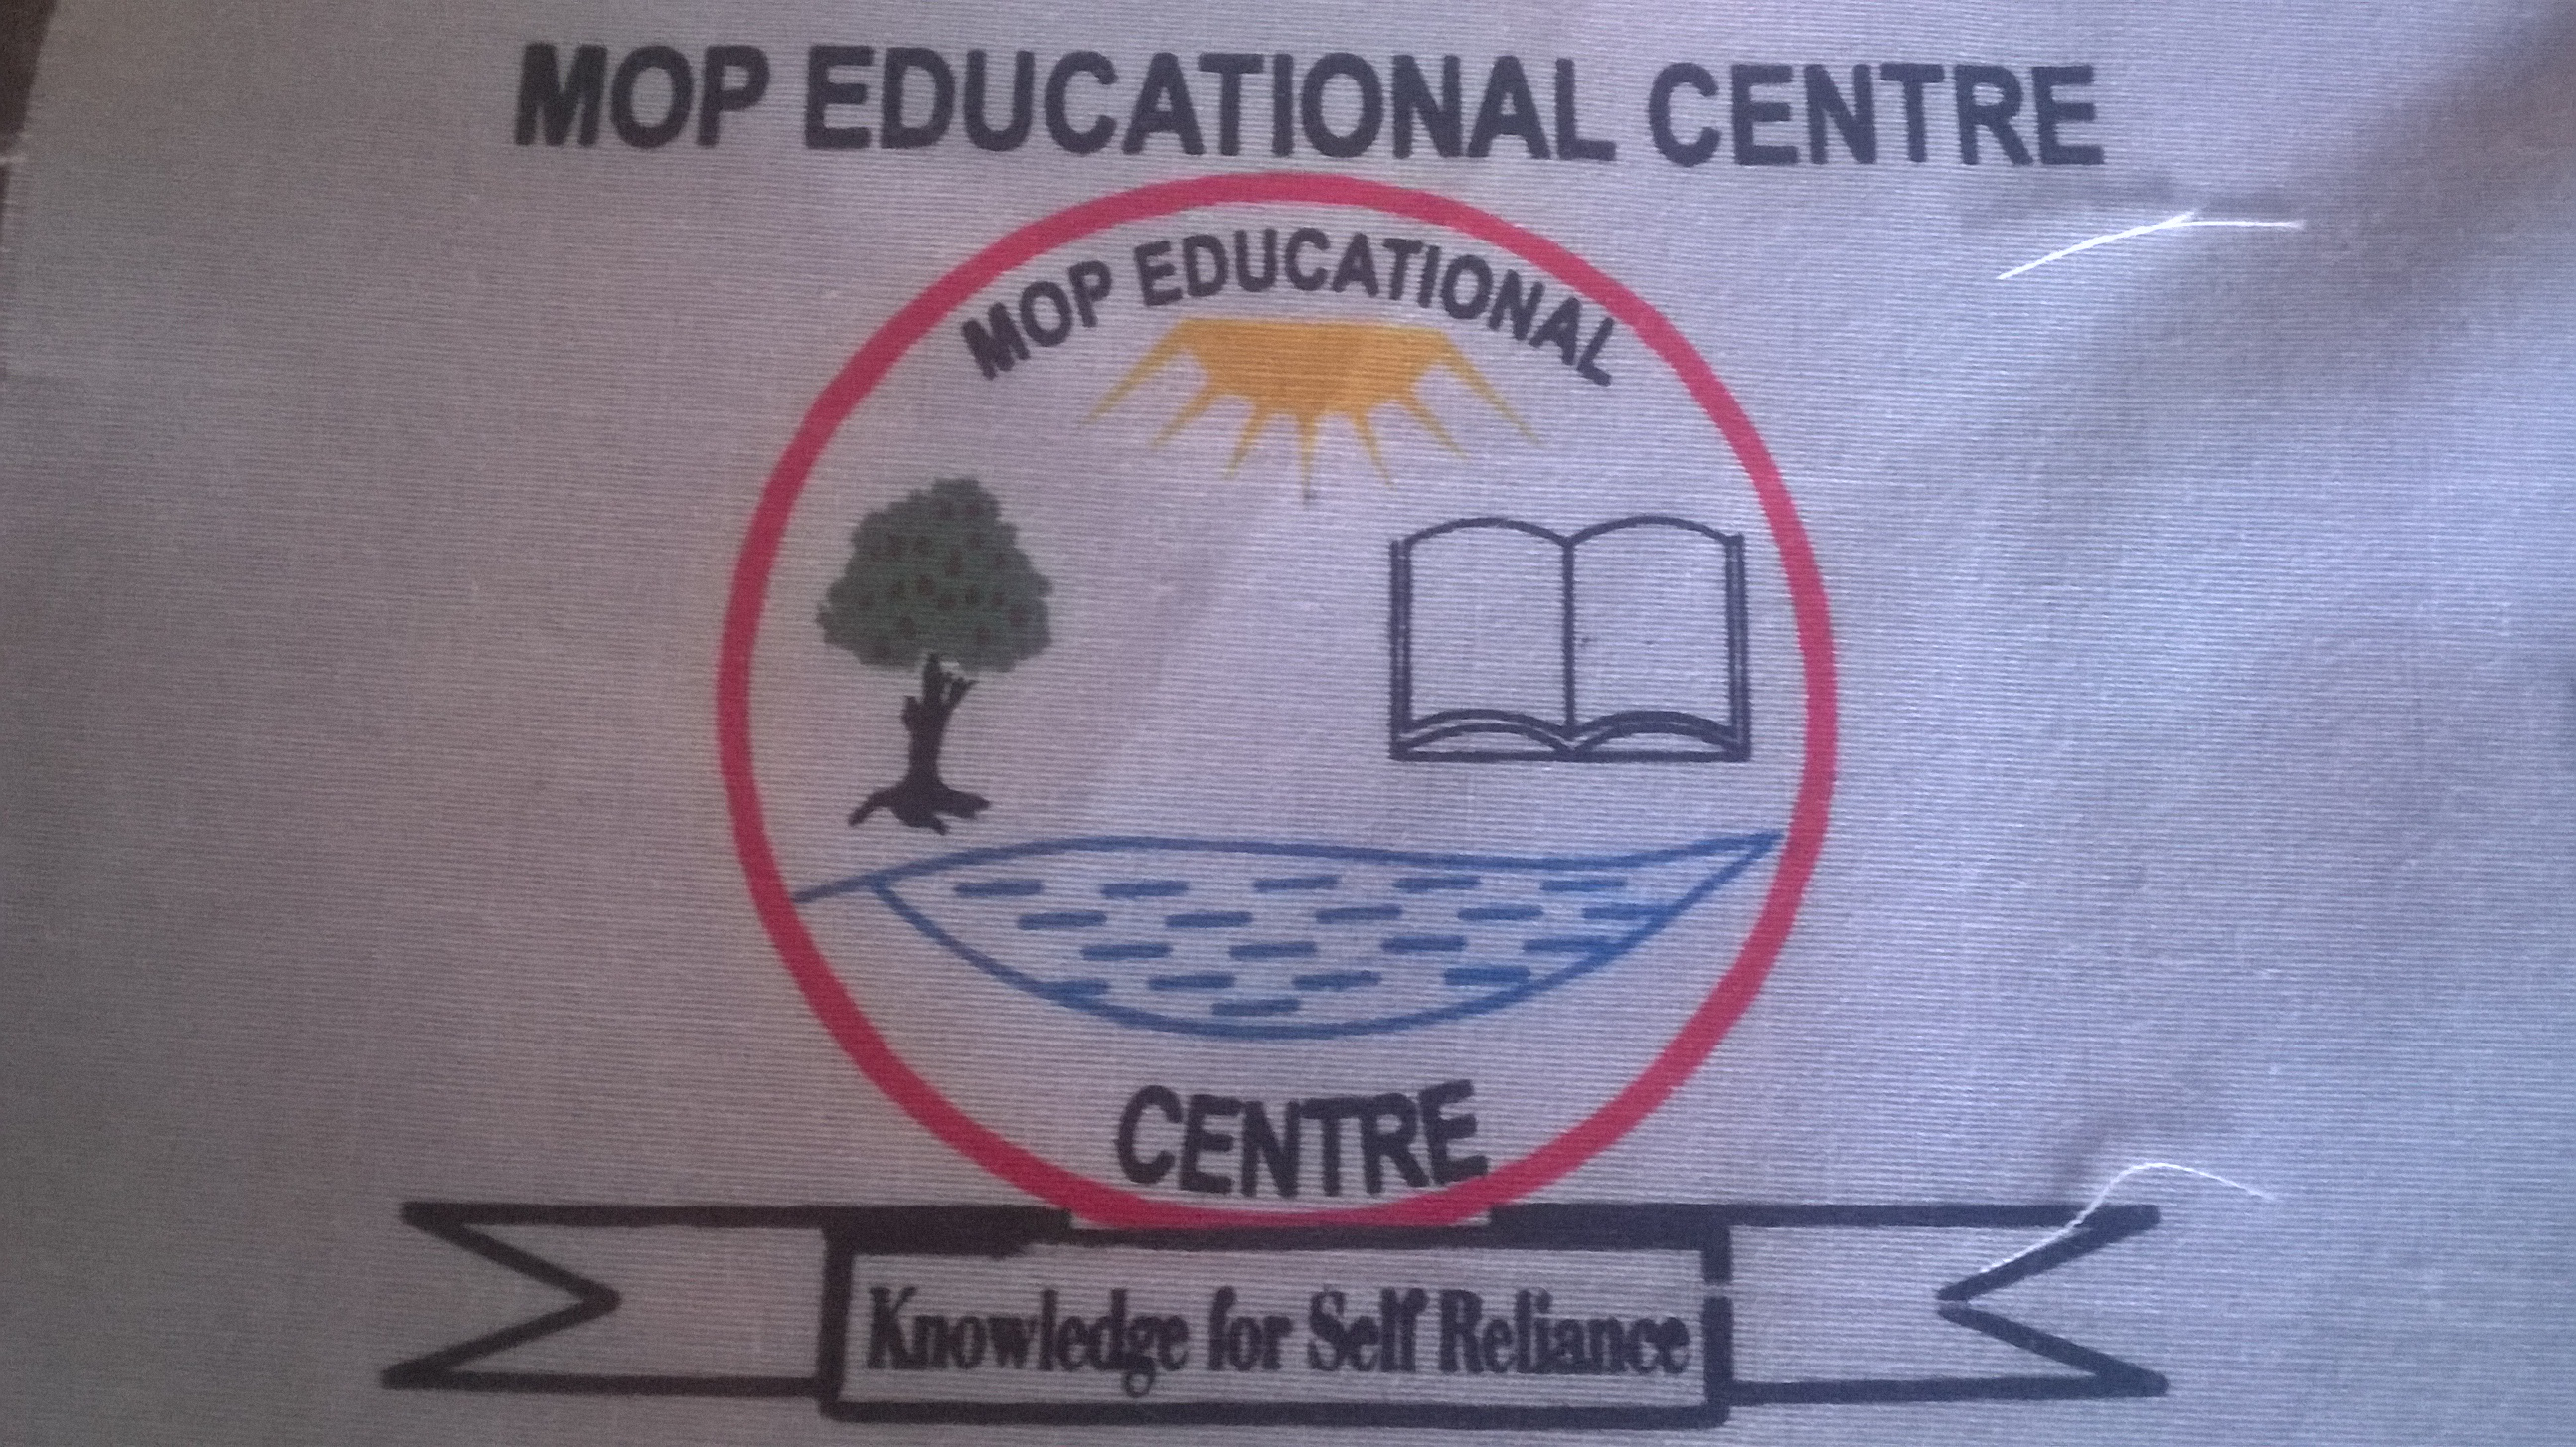 Mop Educational Centre